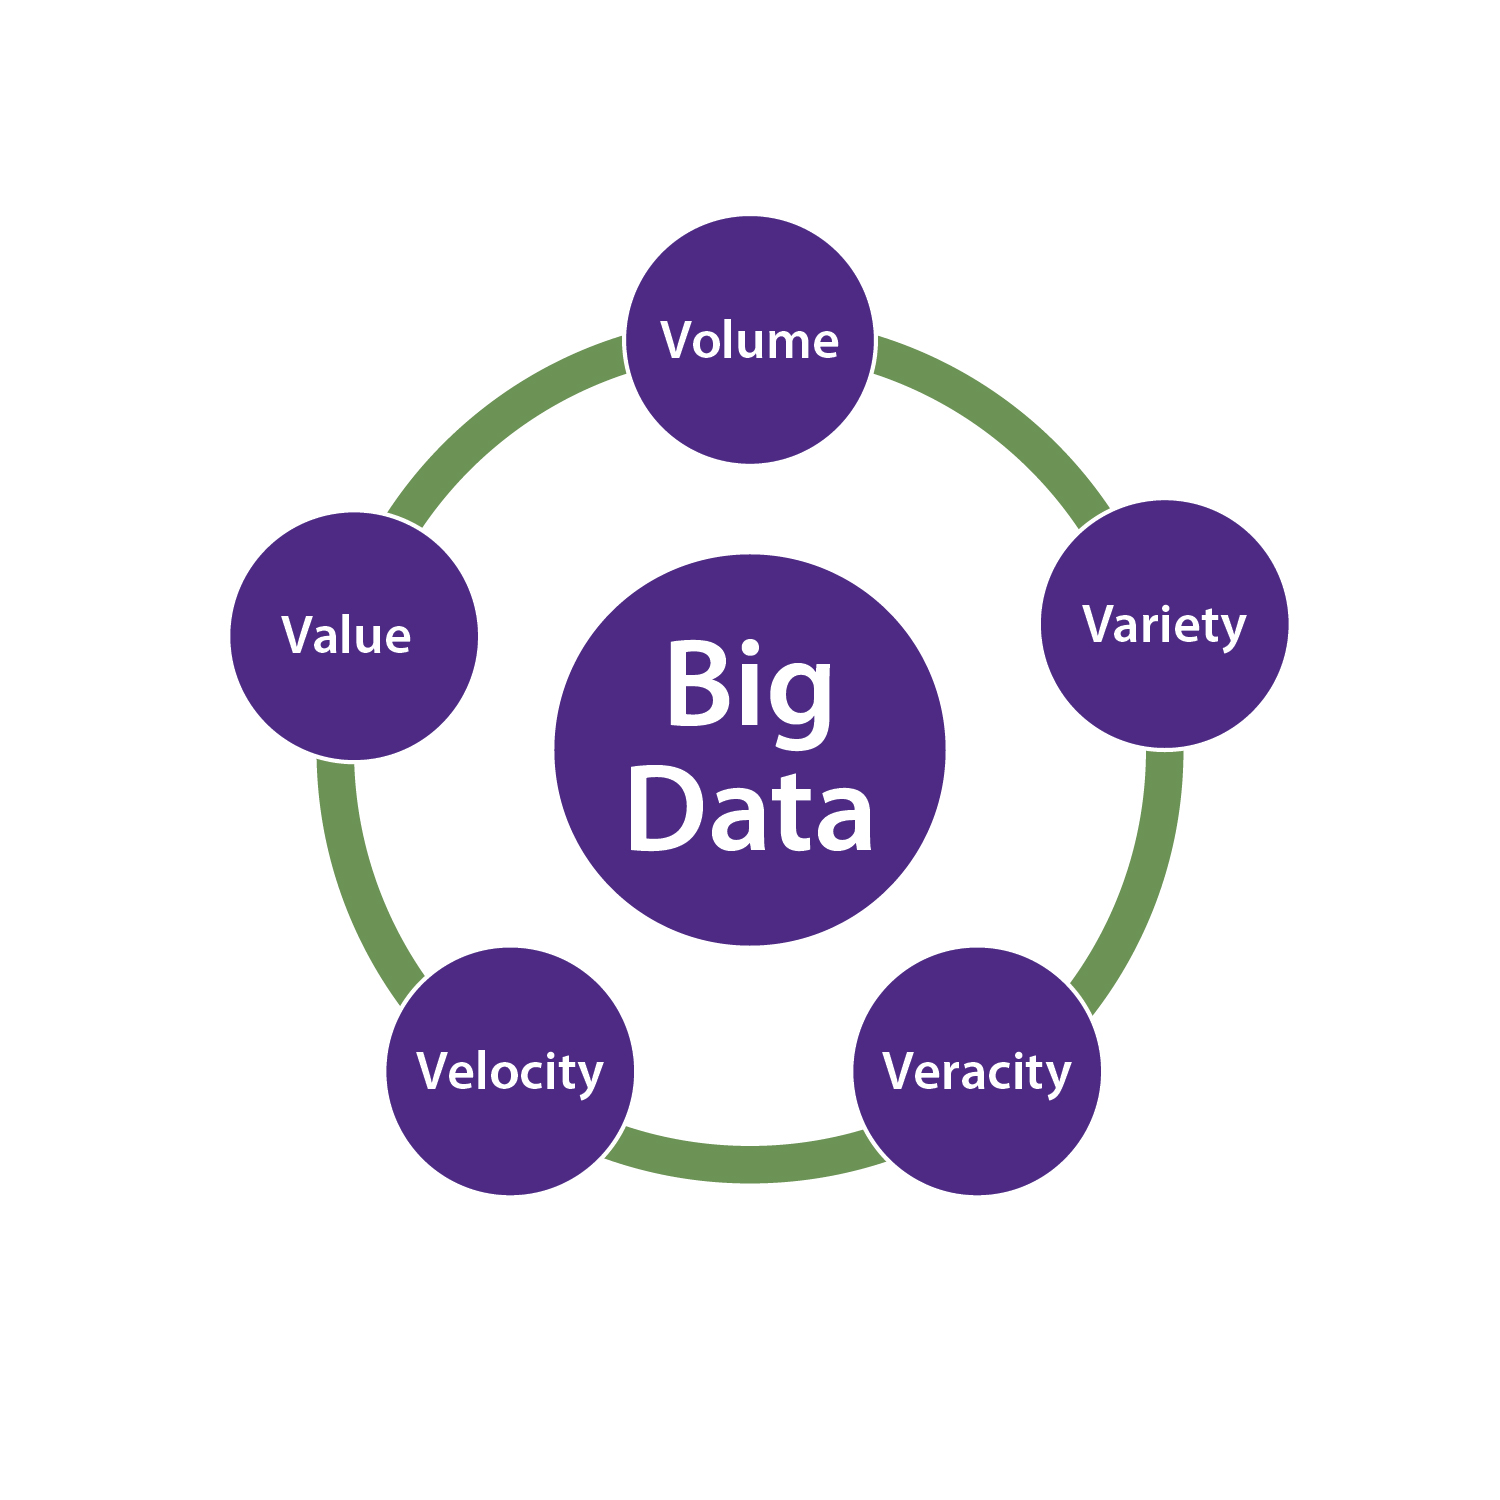 The 5 Vs of big data are value, volume, variety, velocity and veracity.